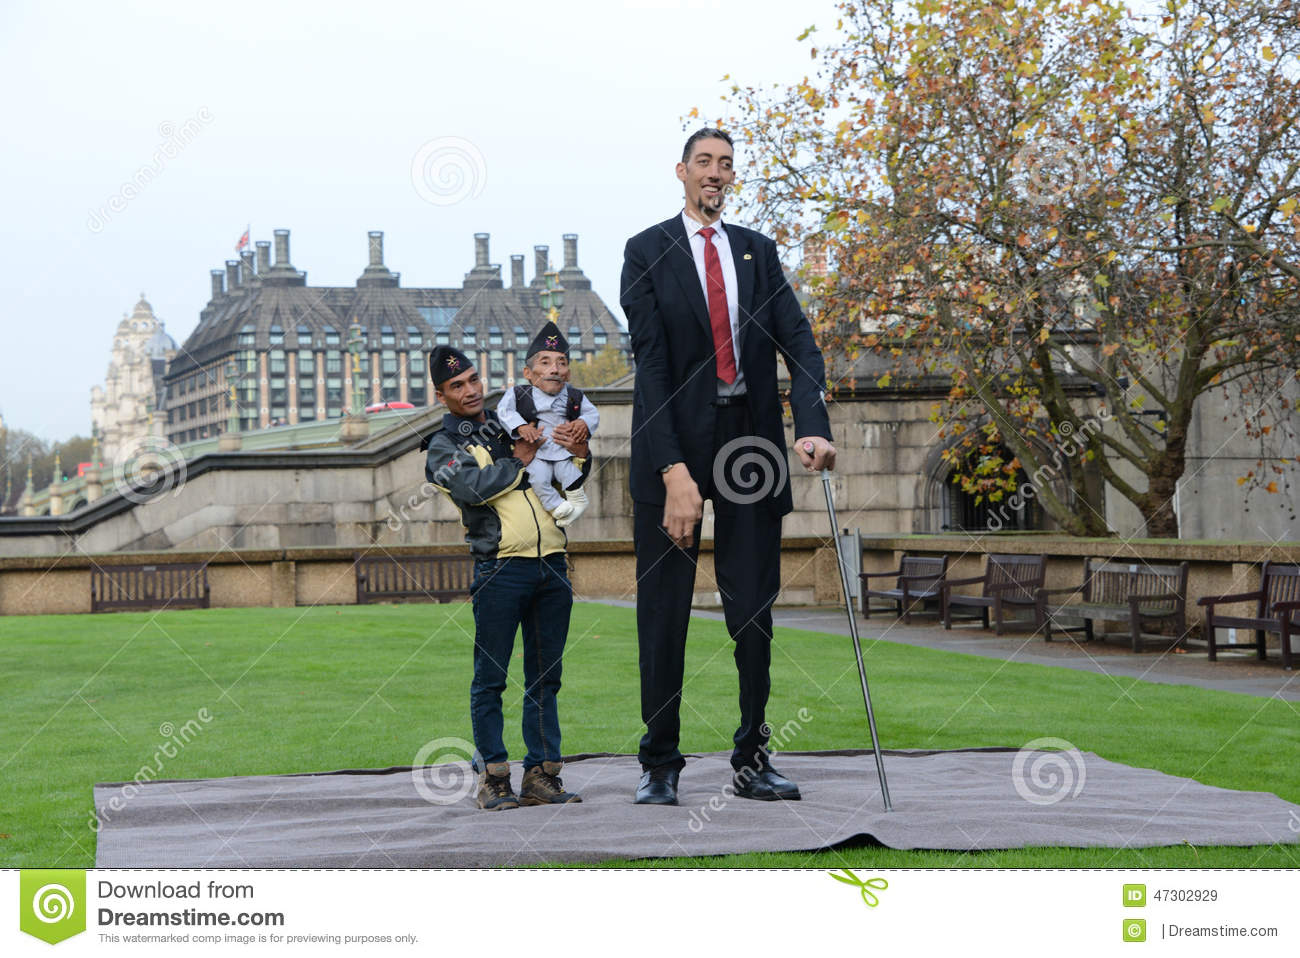 Guinness book of world records 2015 tallest man alive 2016